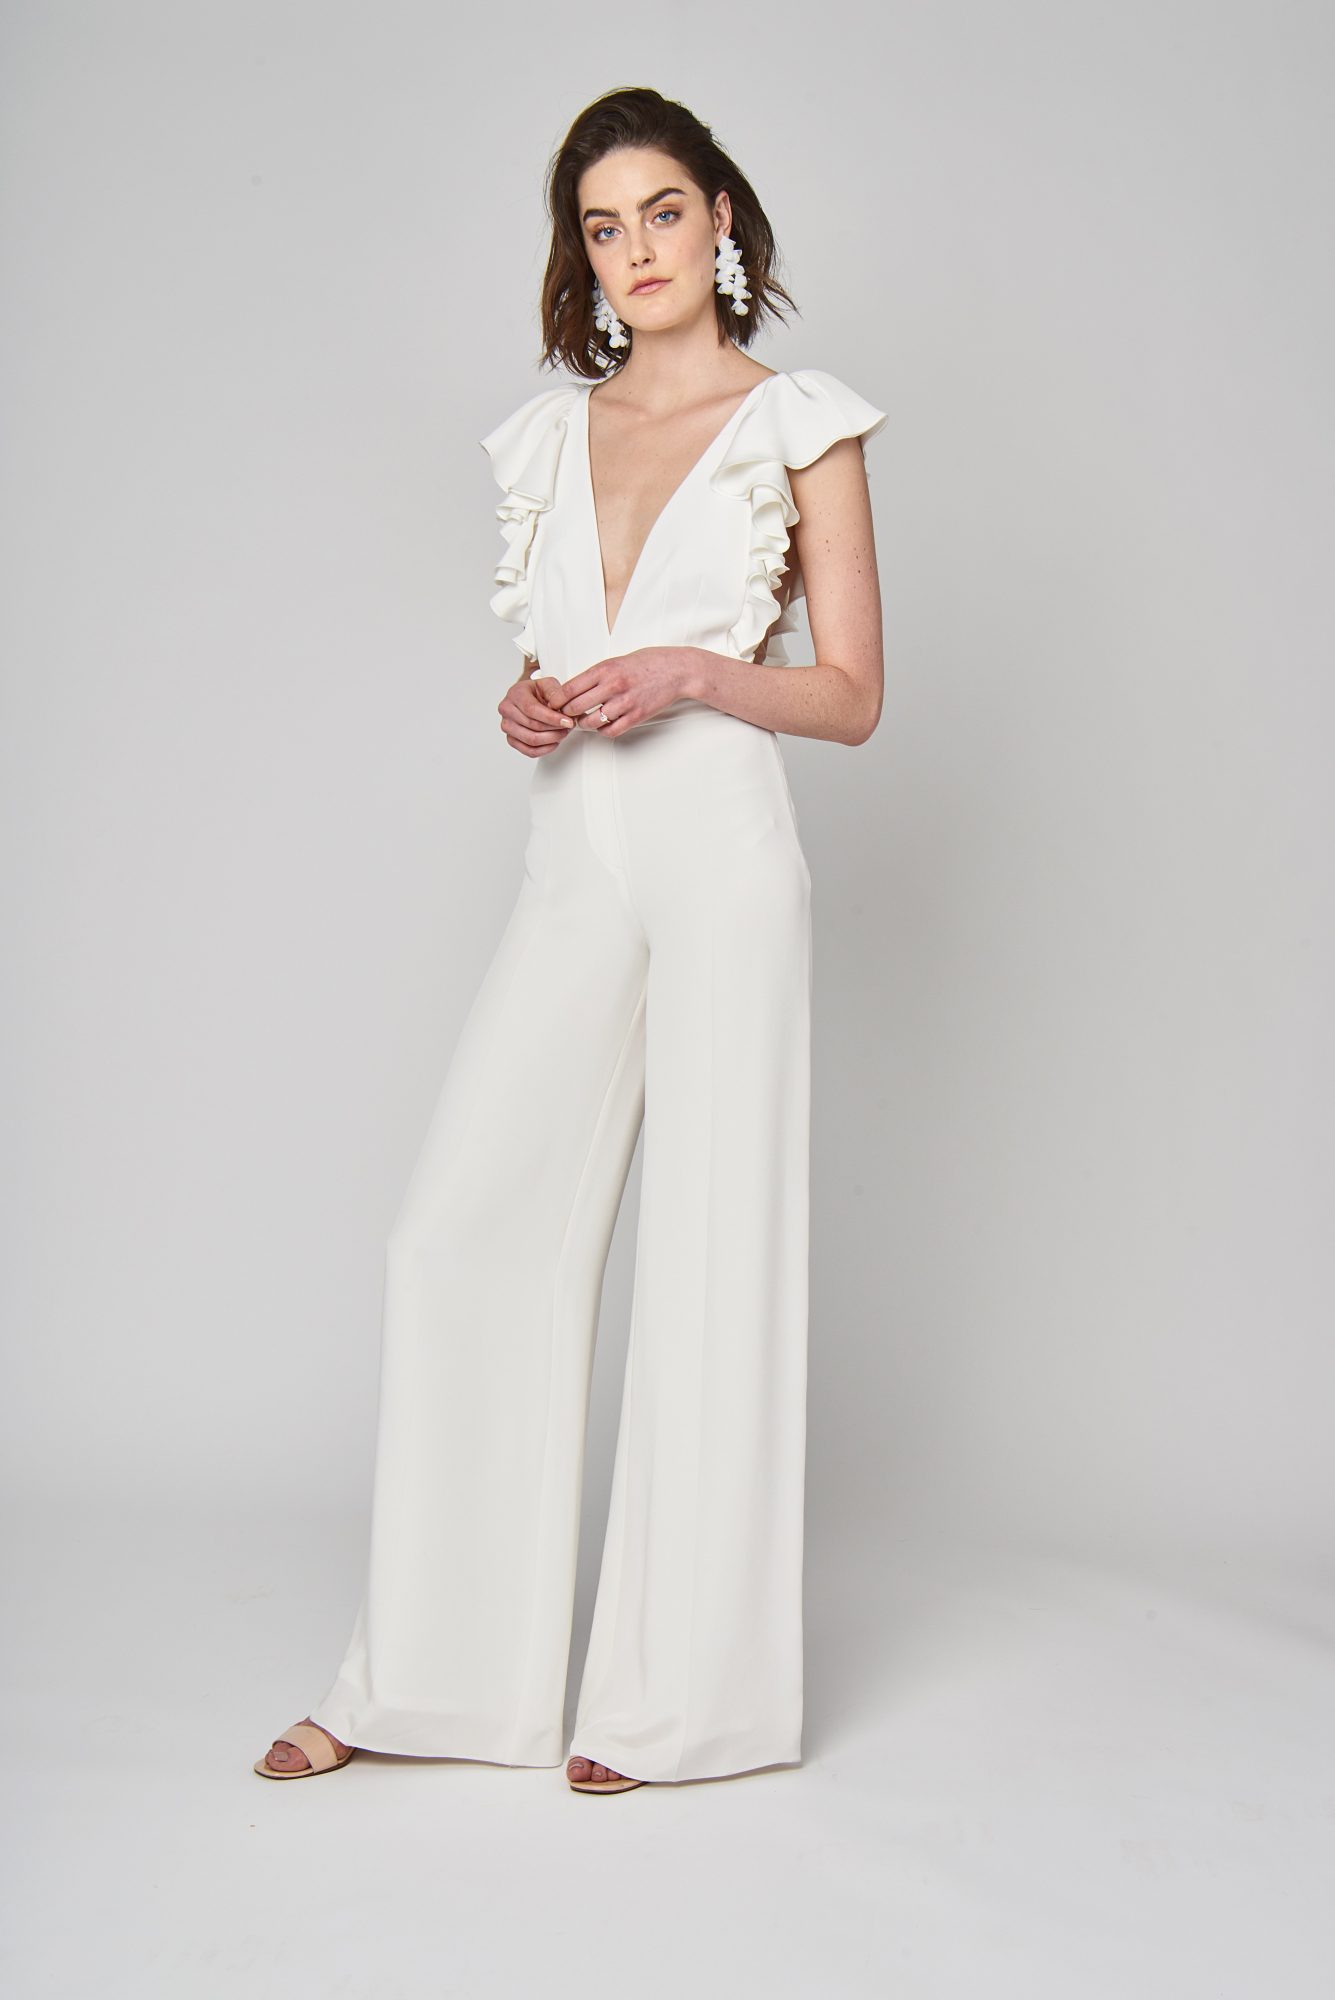 alexandra grecco wedding pant outfit spring 2019